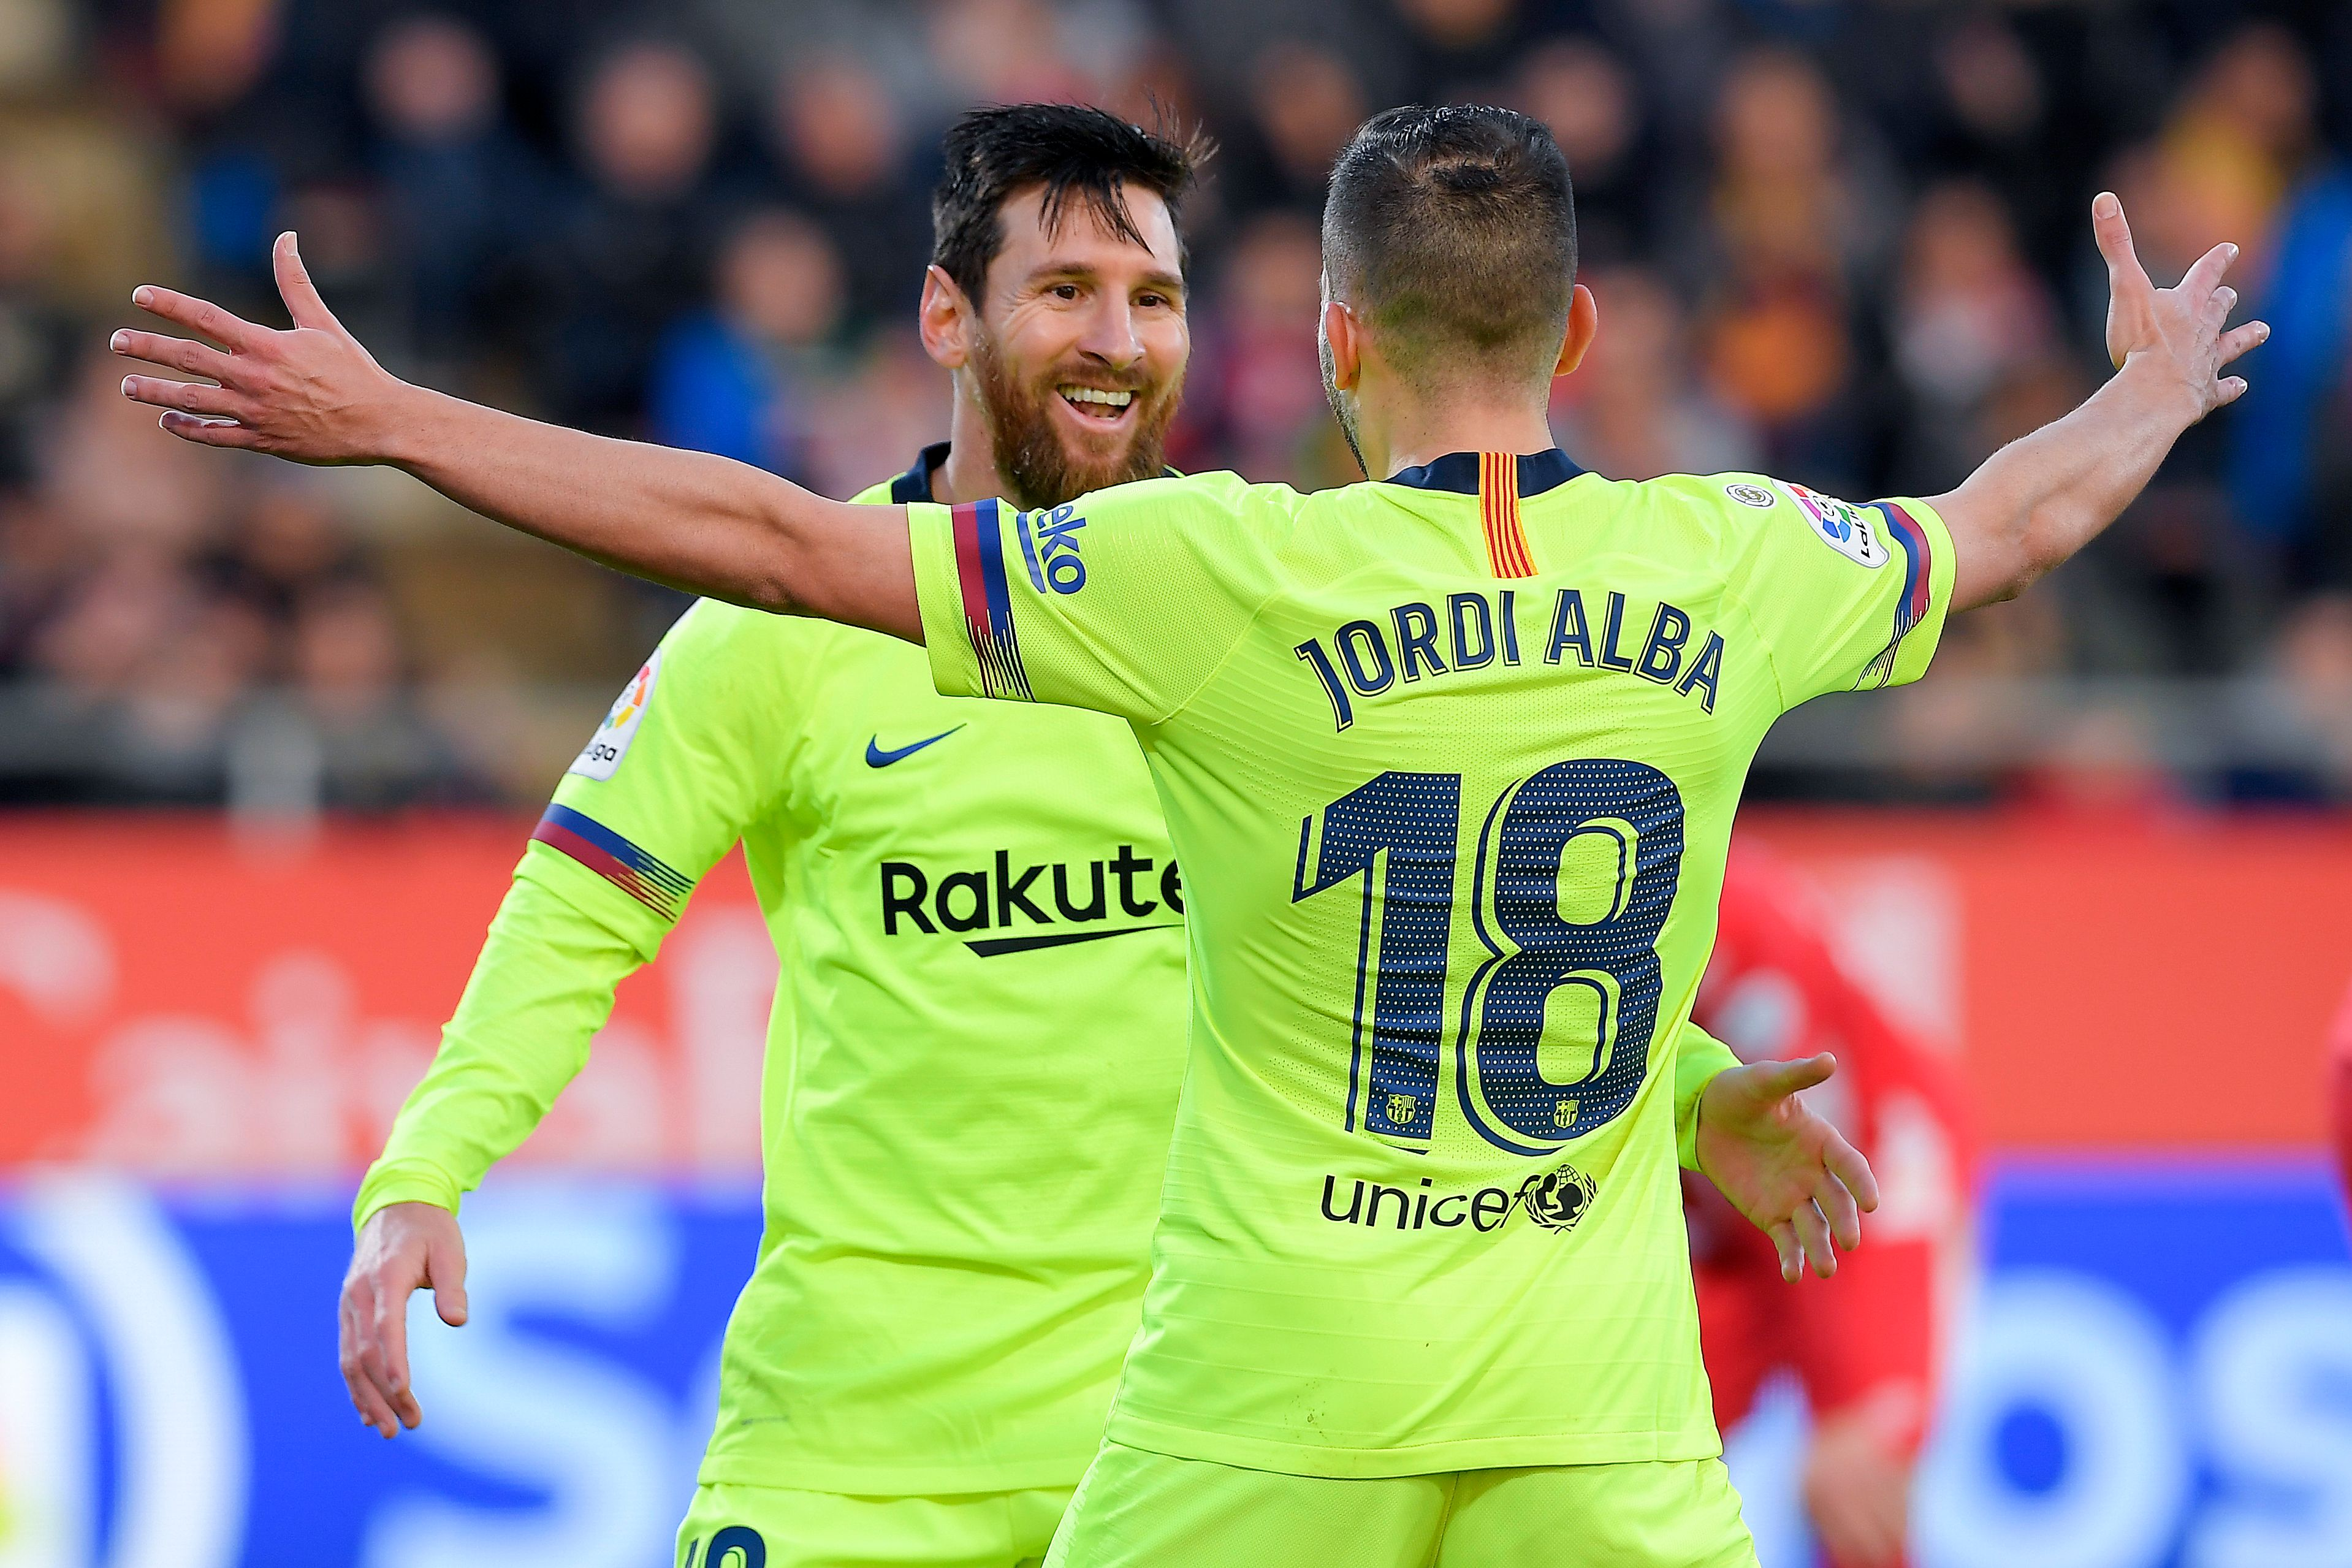 Barcelona's Argentinian forward Lionel Messi (L) celebrates with Barcelona's Spanish defender Jordi Alba after scoring a goal during the Spanish league football match between Girona FC and FC Barcelona at the Montilivi stadium in Girona on January 27, 2019. (Photo by LLUIS GENE / AFP)